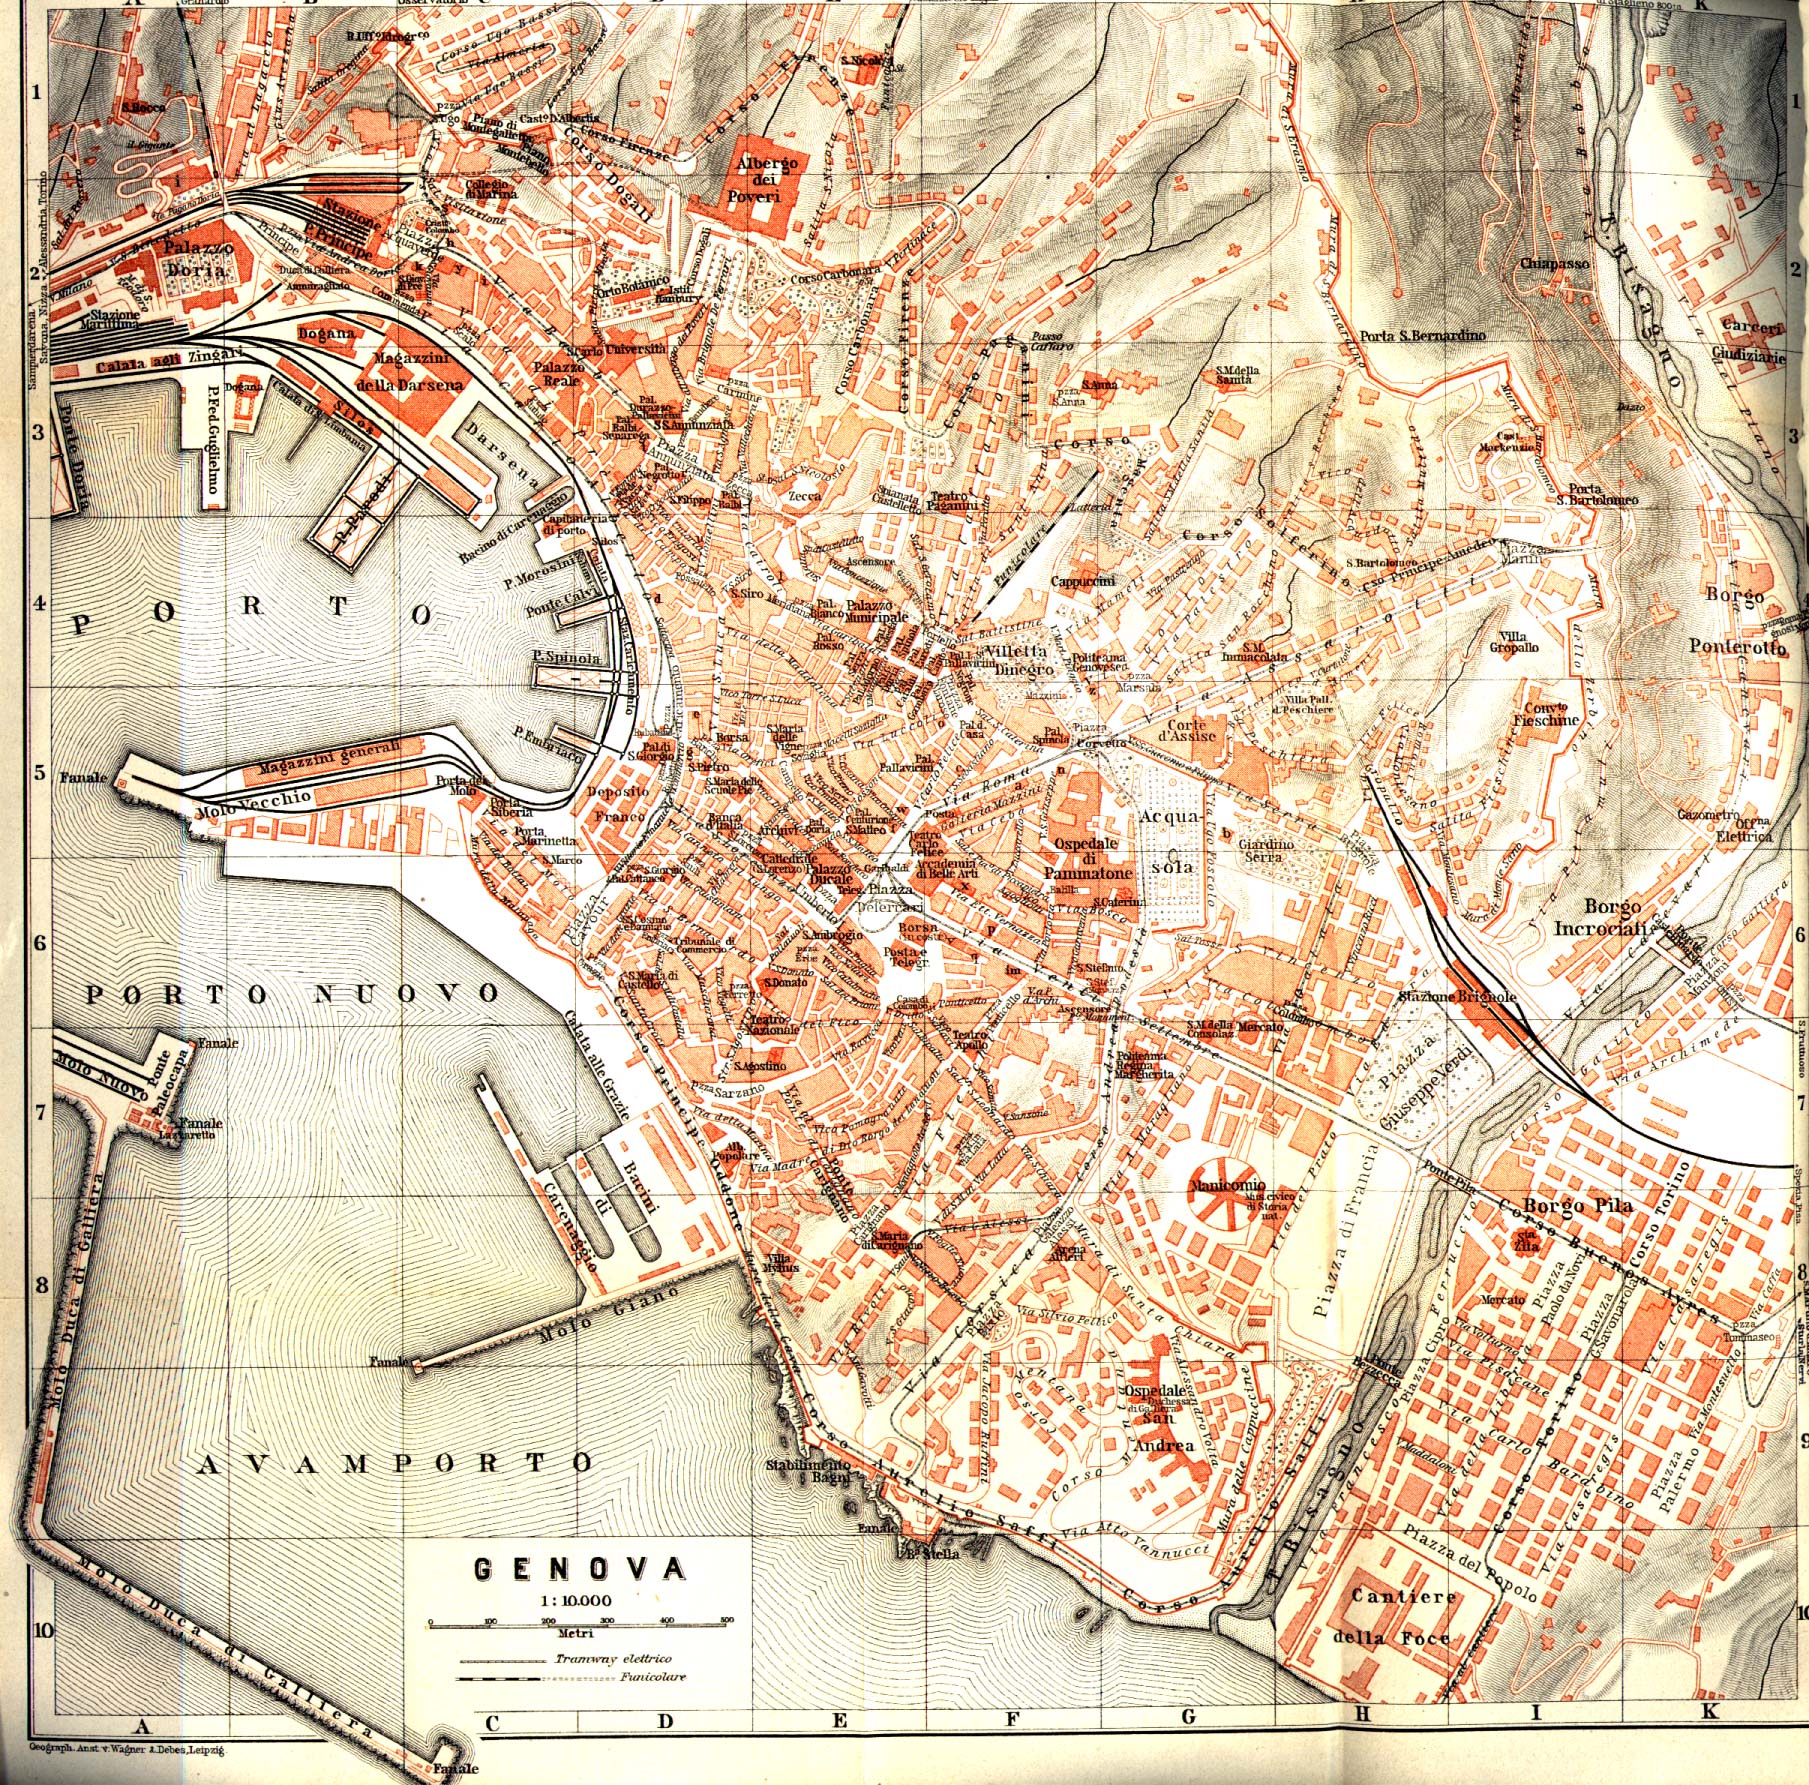 Europe historical maps perry castaeda map collection ut library genova genoa 1913 gumiabroncs Images